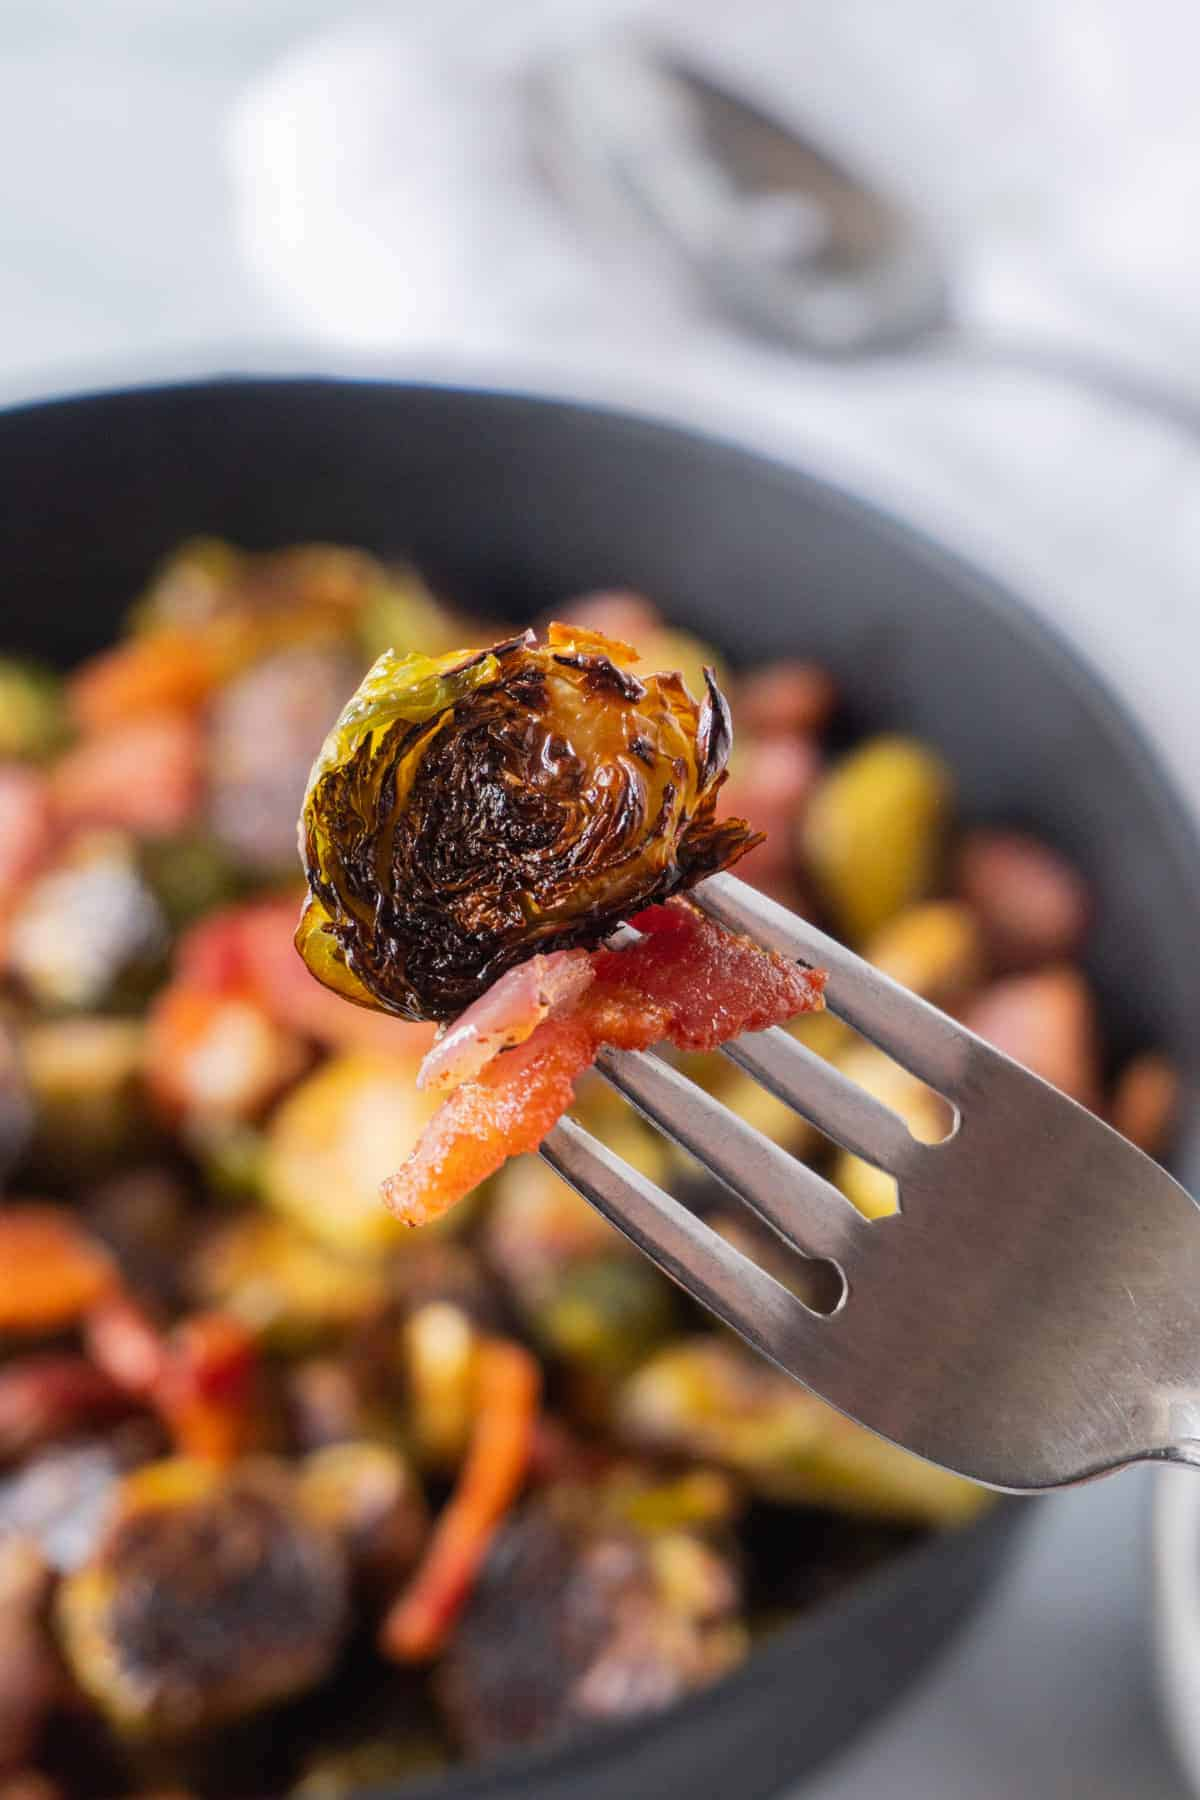 Brussel Sprout, shallot and bacon on a fork